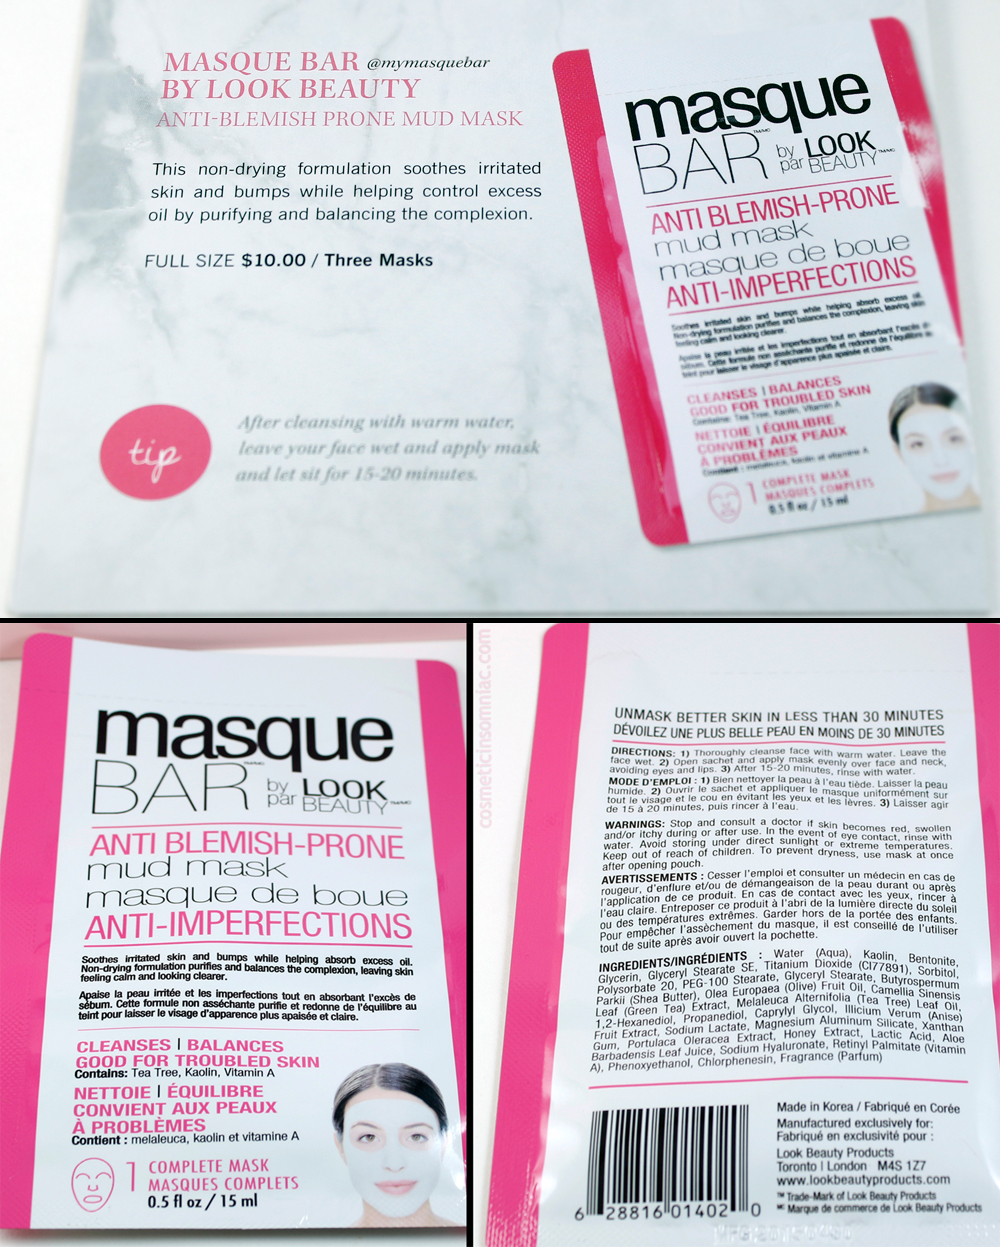 Glossybox October 2016    masque BAR by Look Beauty